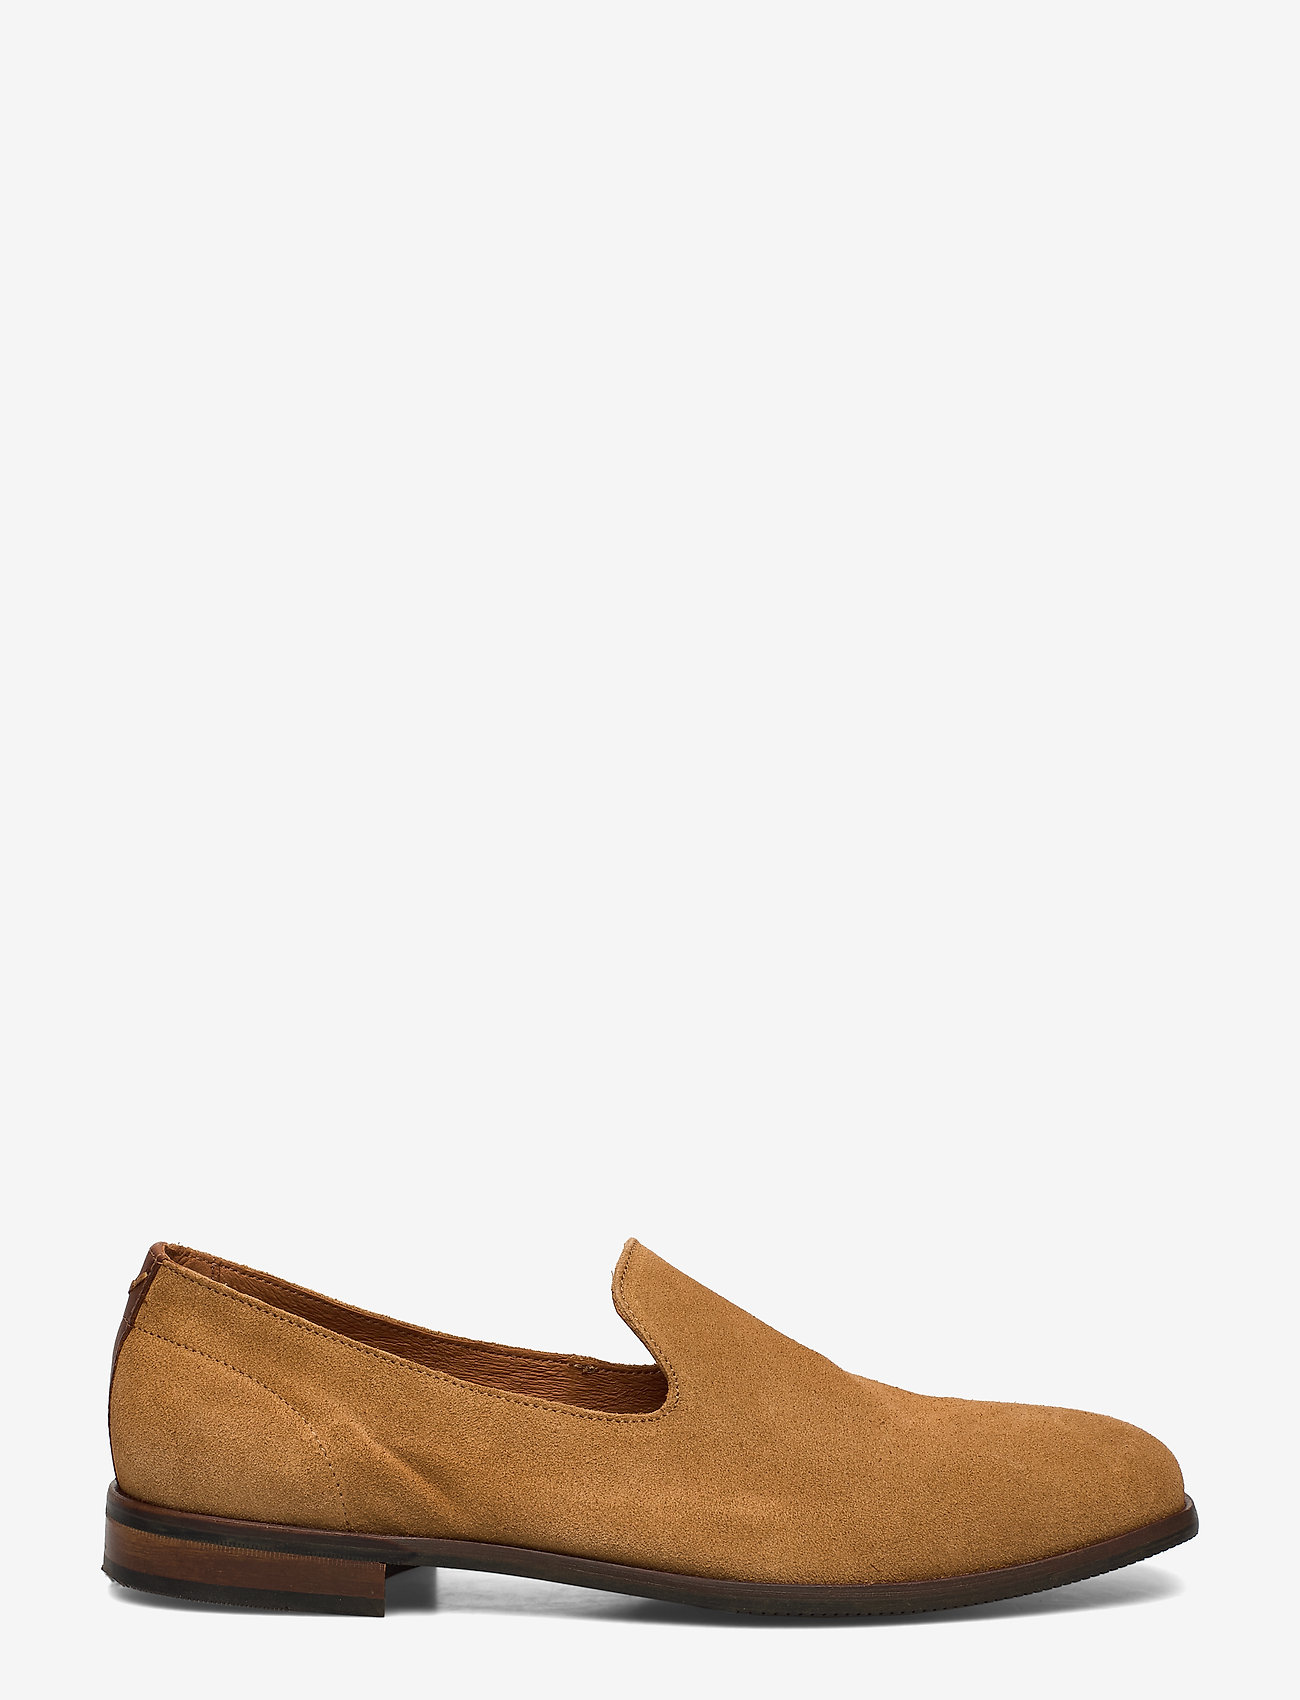 Shoe The Bear - STB-REY S - loafers - camel - 1